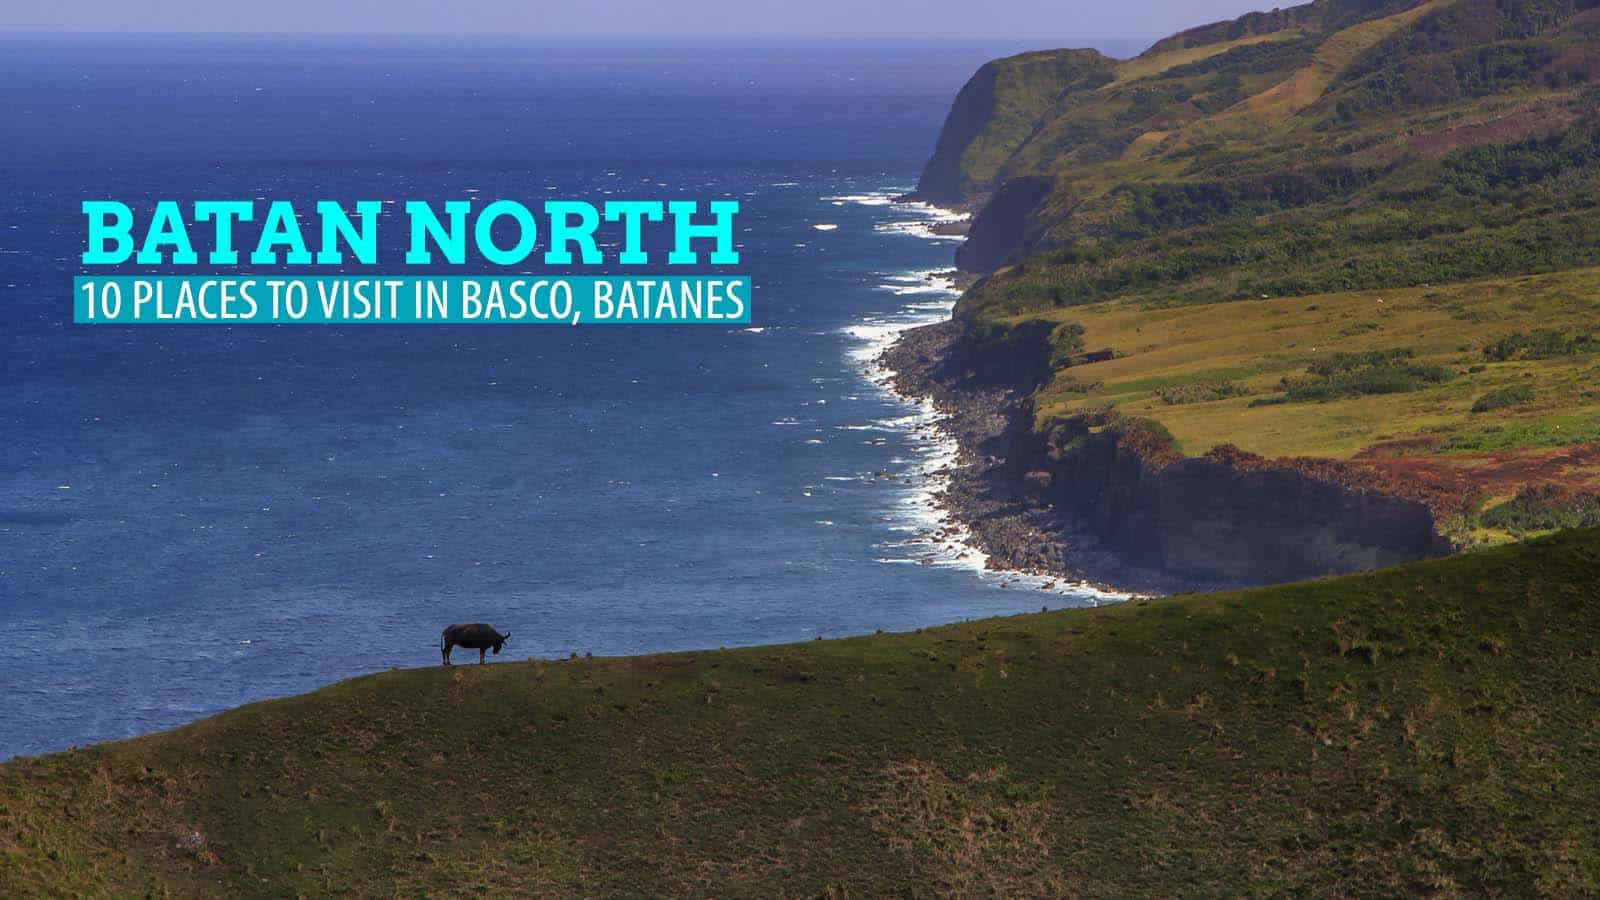 North Batan Tour: 10 Incredible Places in Basco, Batanes